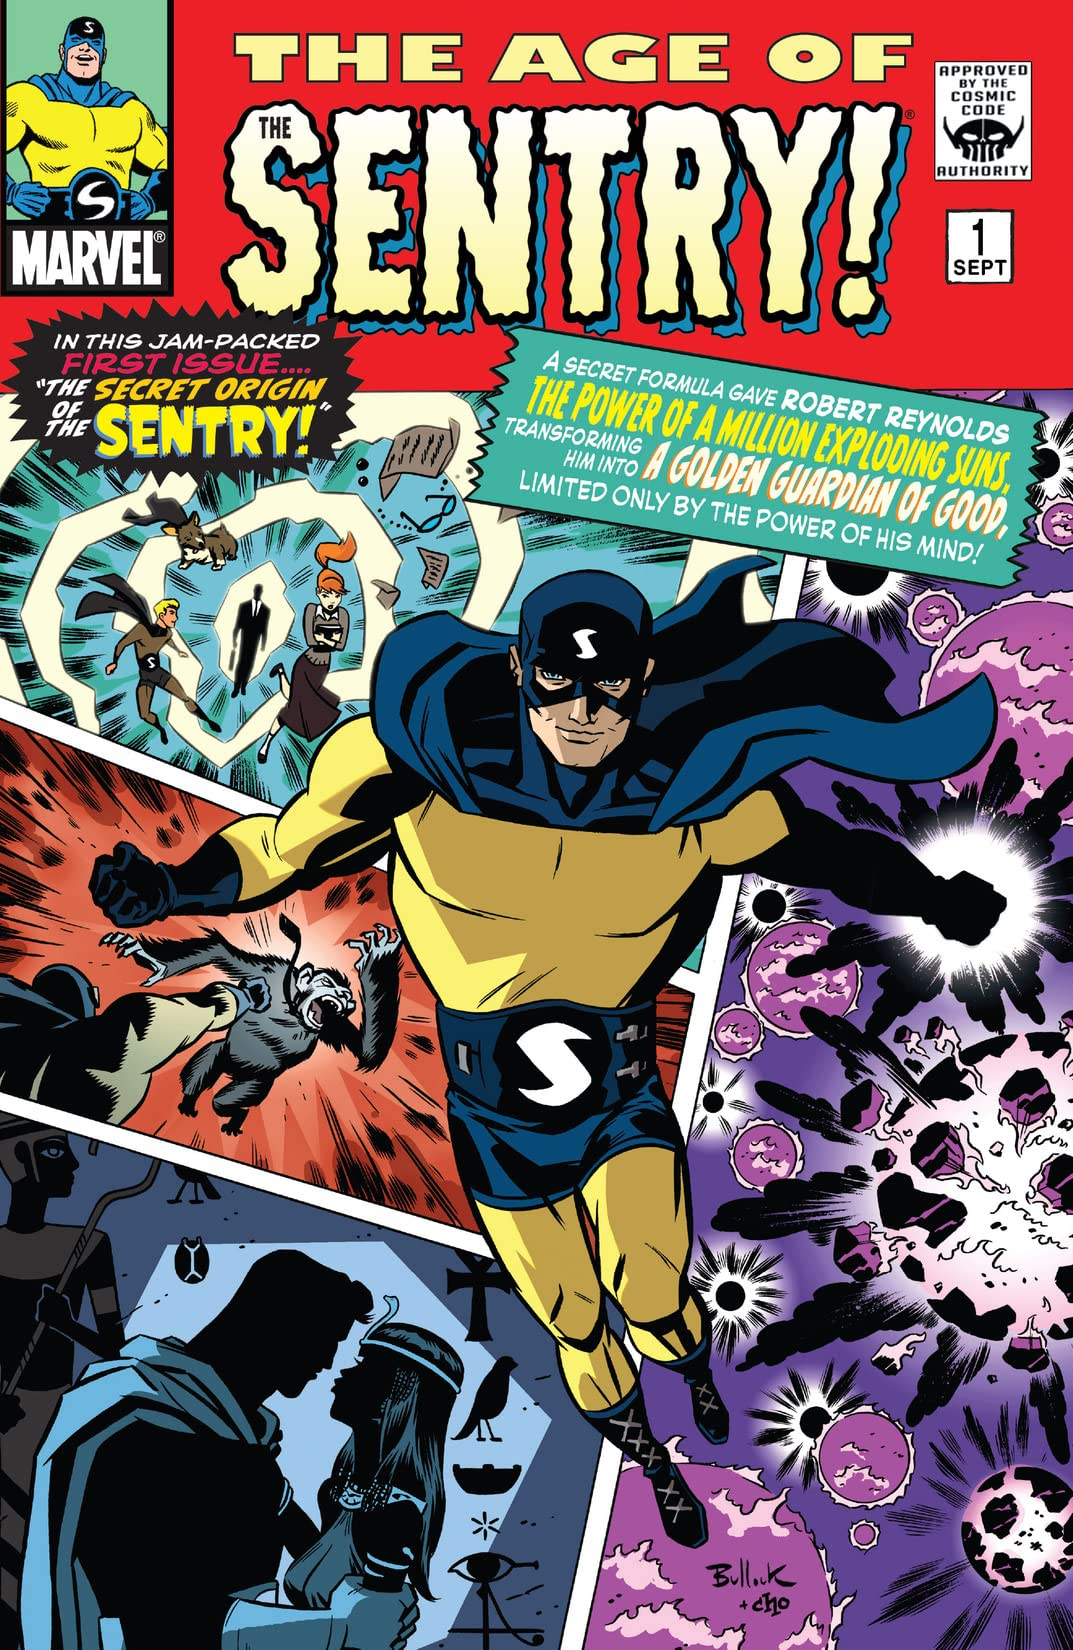 The Age Of The Sentry (2008-2009) #1 (of 6) - Comics by comiXology